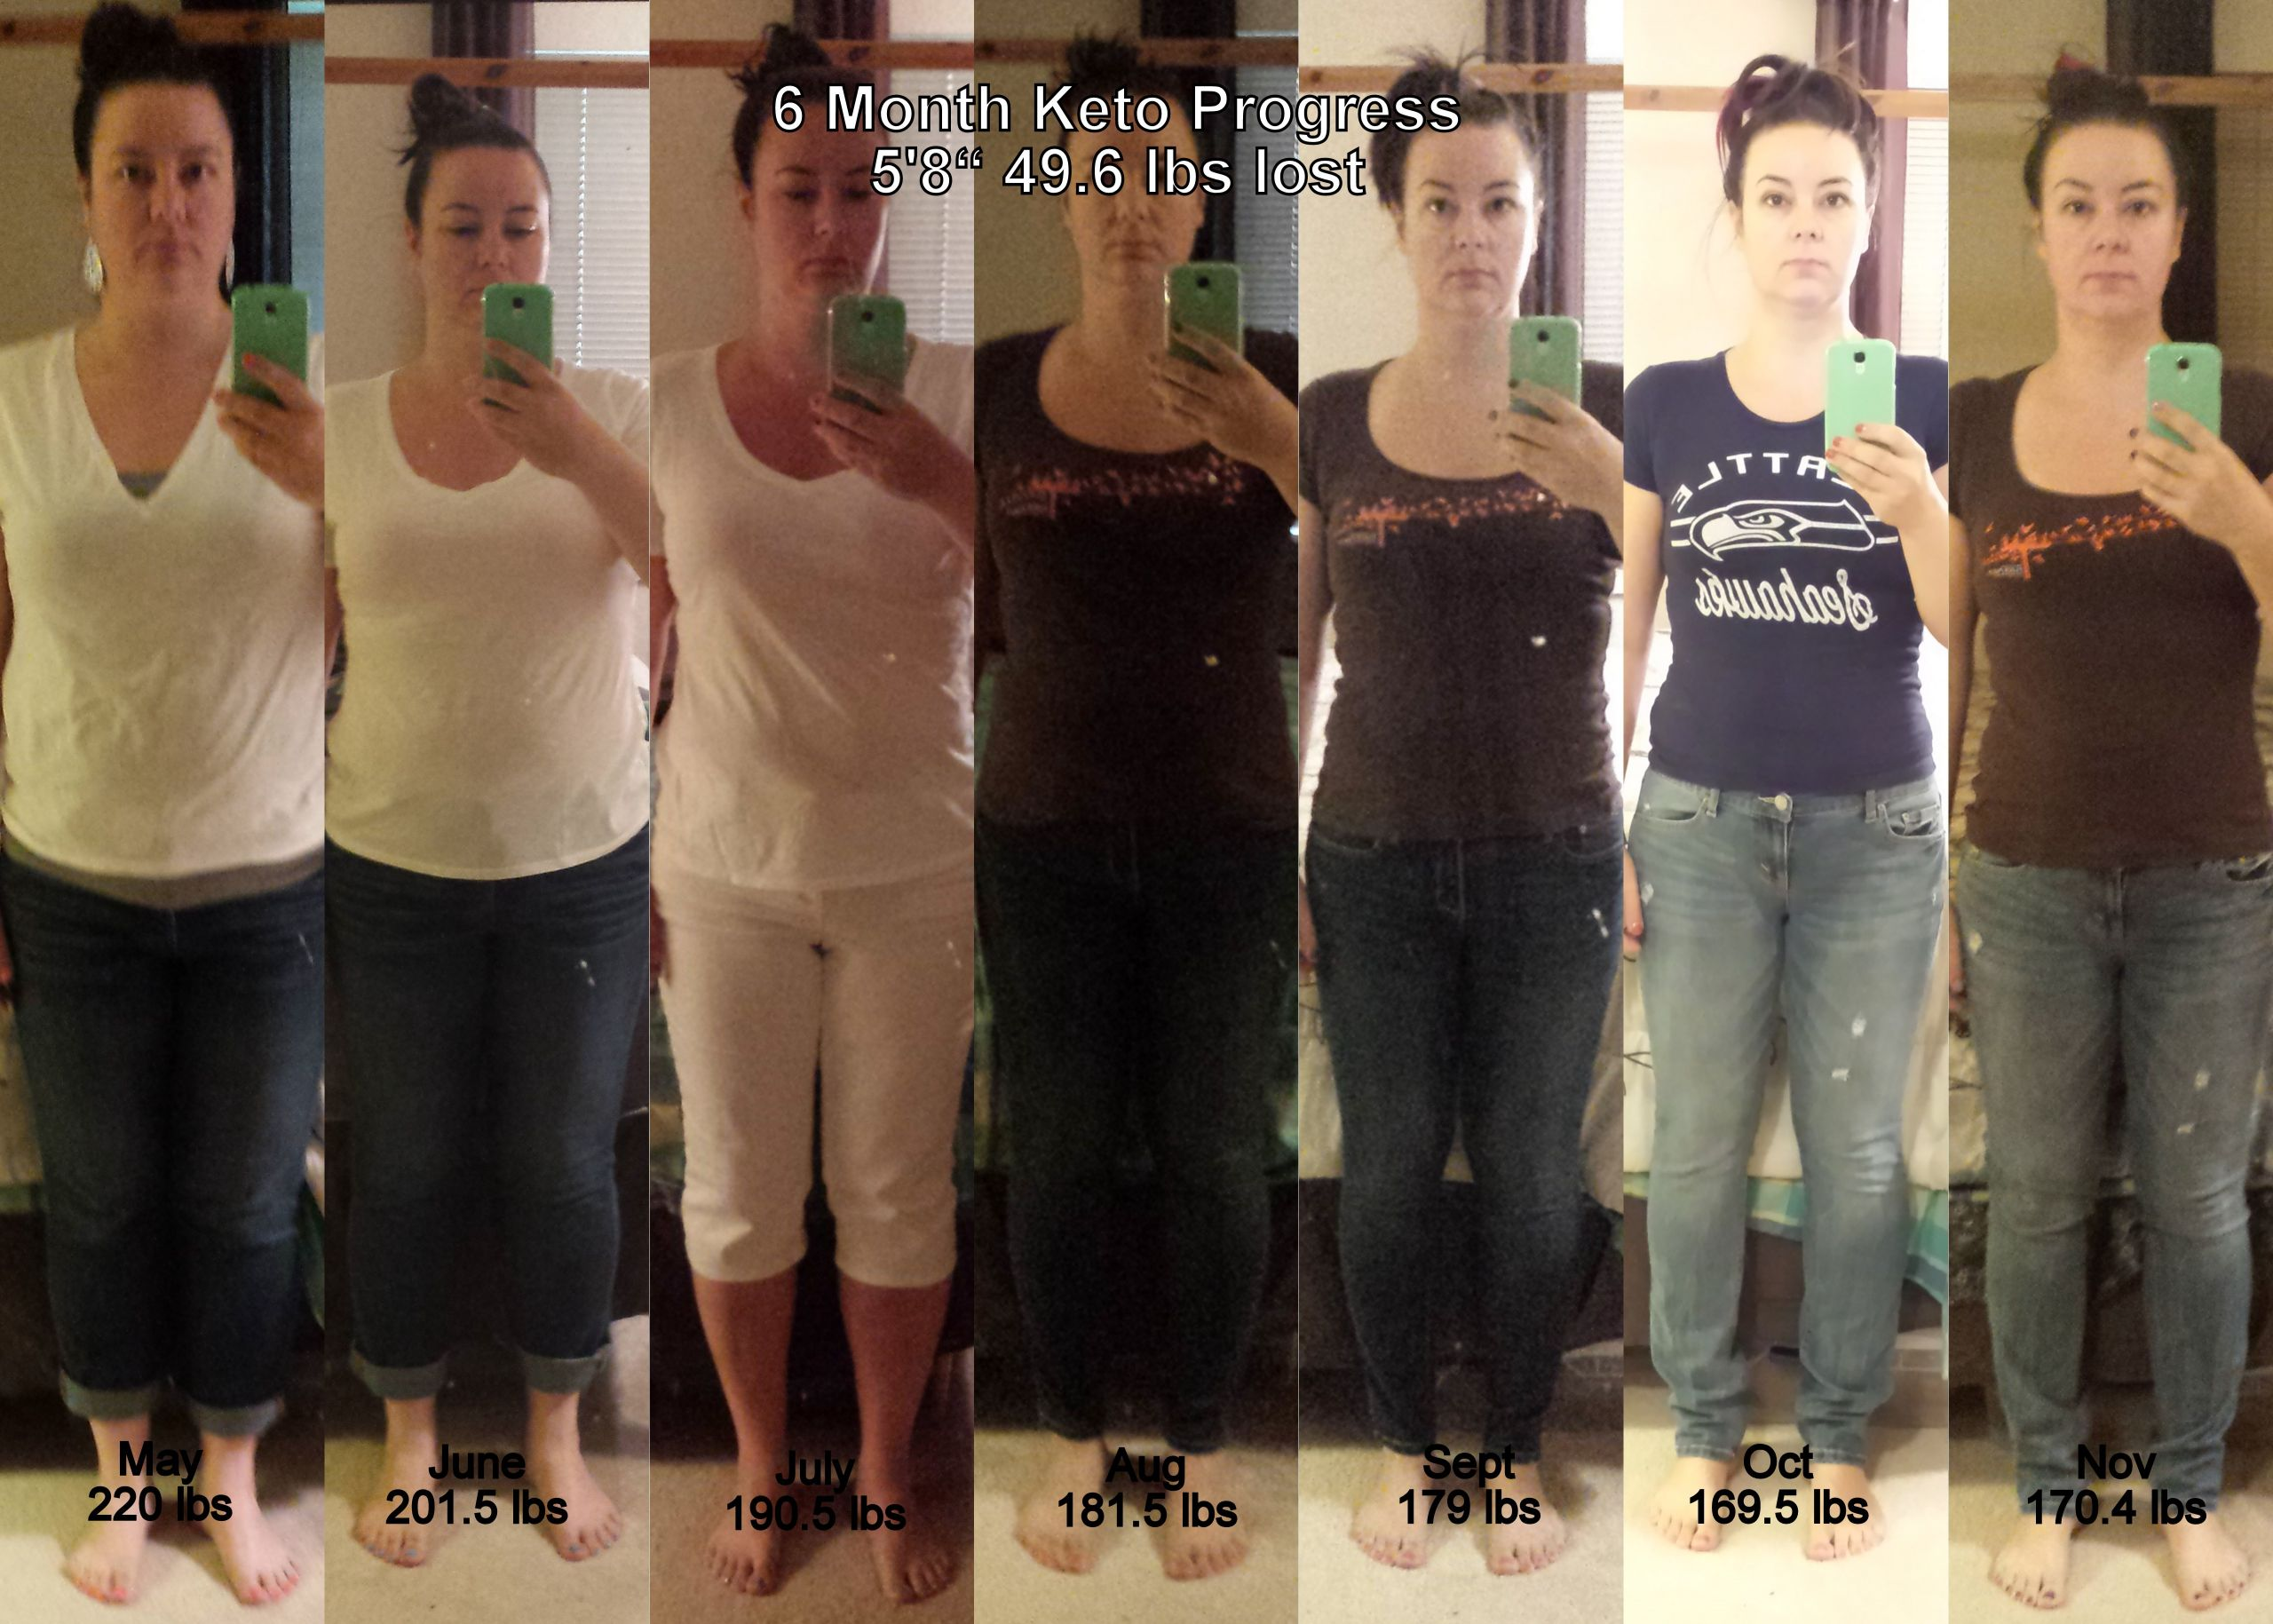 Ketosis Diet Results  6 Month Update on My Ketogenic Diet – Keto Carole